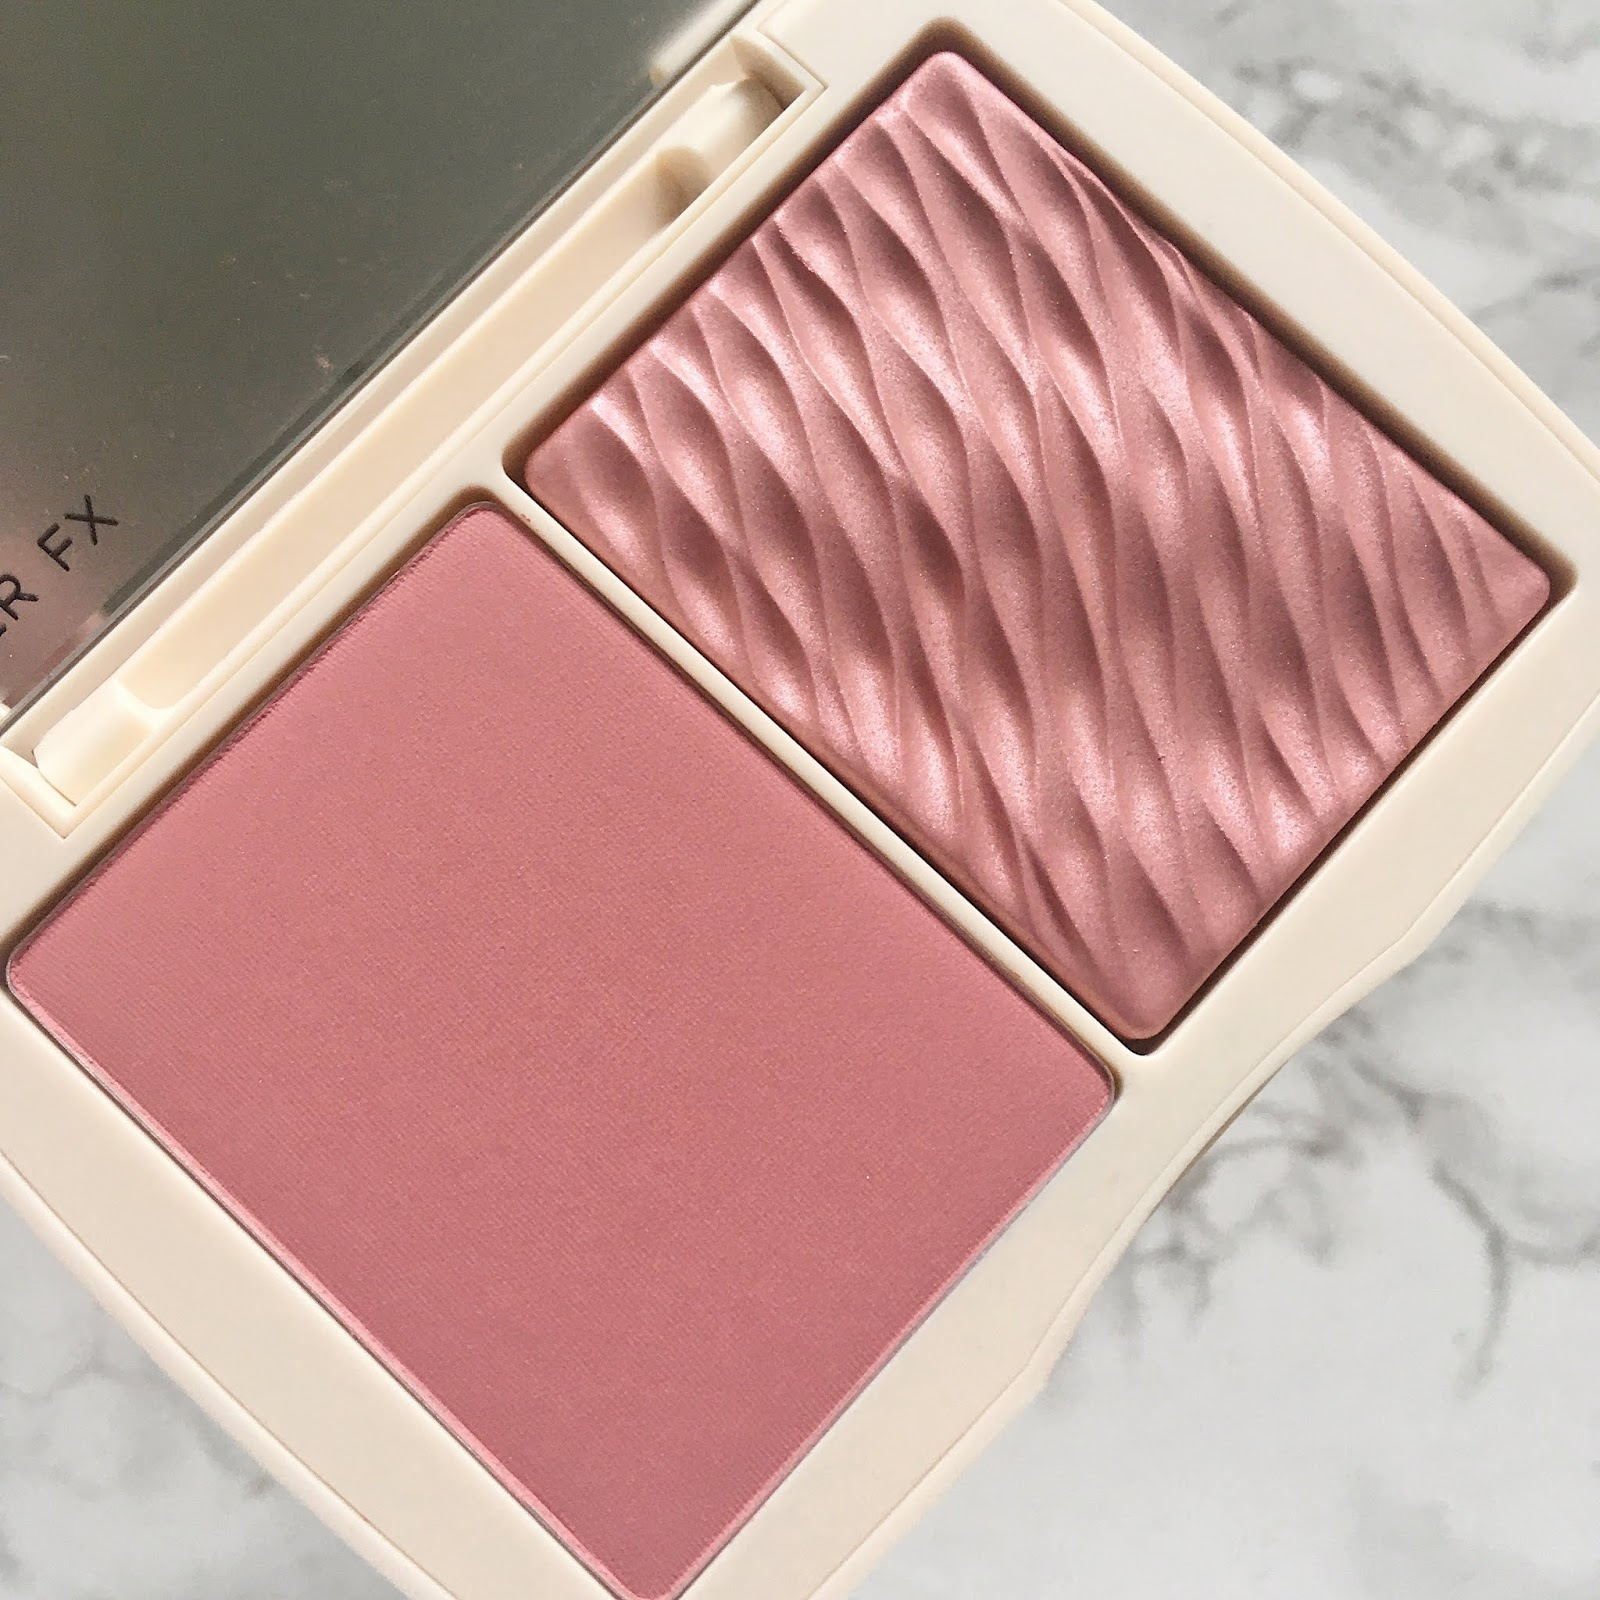 coverfx cheek duo blush review mojave mauve